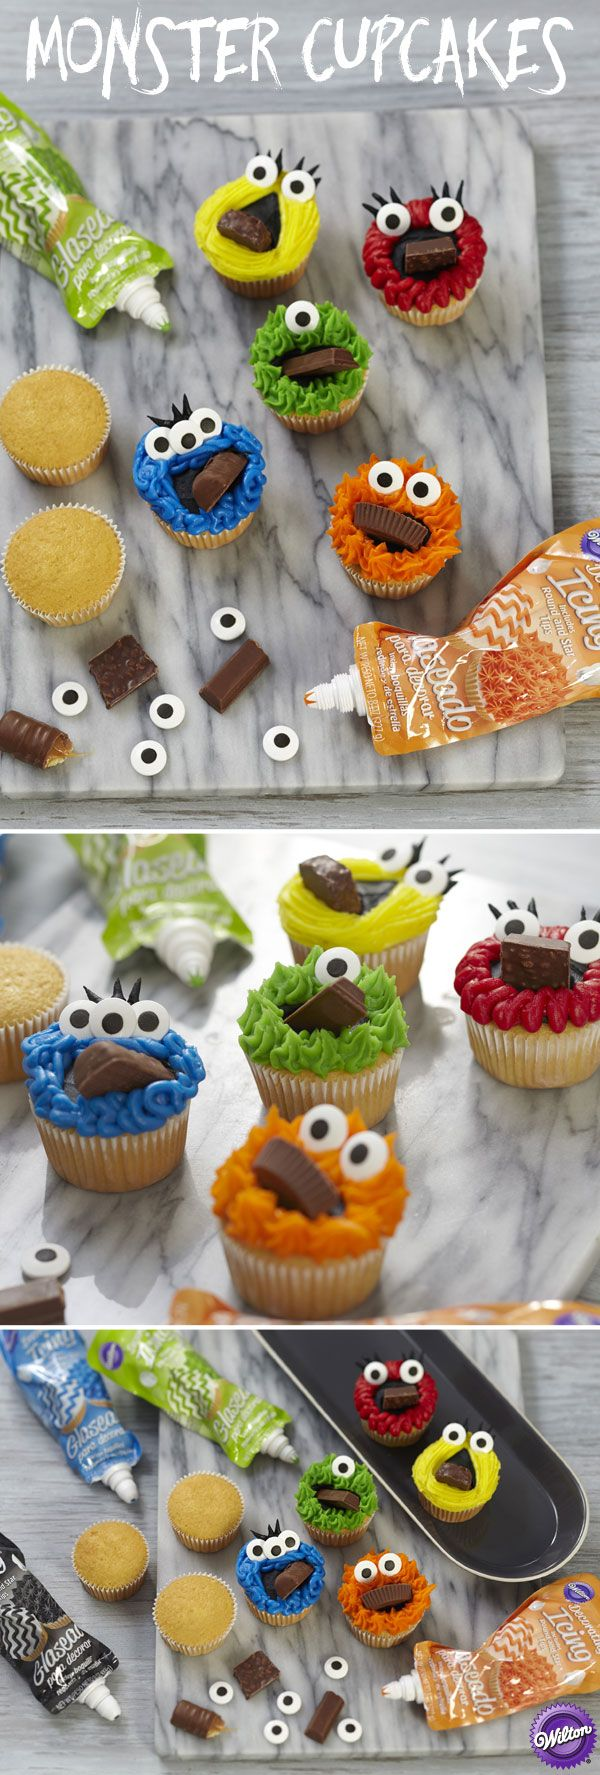 Mischief-makers find it hard to scream on Halloween when you stuff their faces with treats! The cupcake creatures are colorfully decorated with Wilton Icing Pouches and topped with Large Candy Eyeballs.